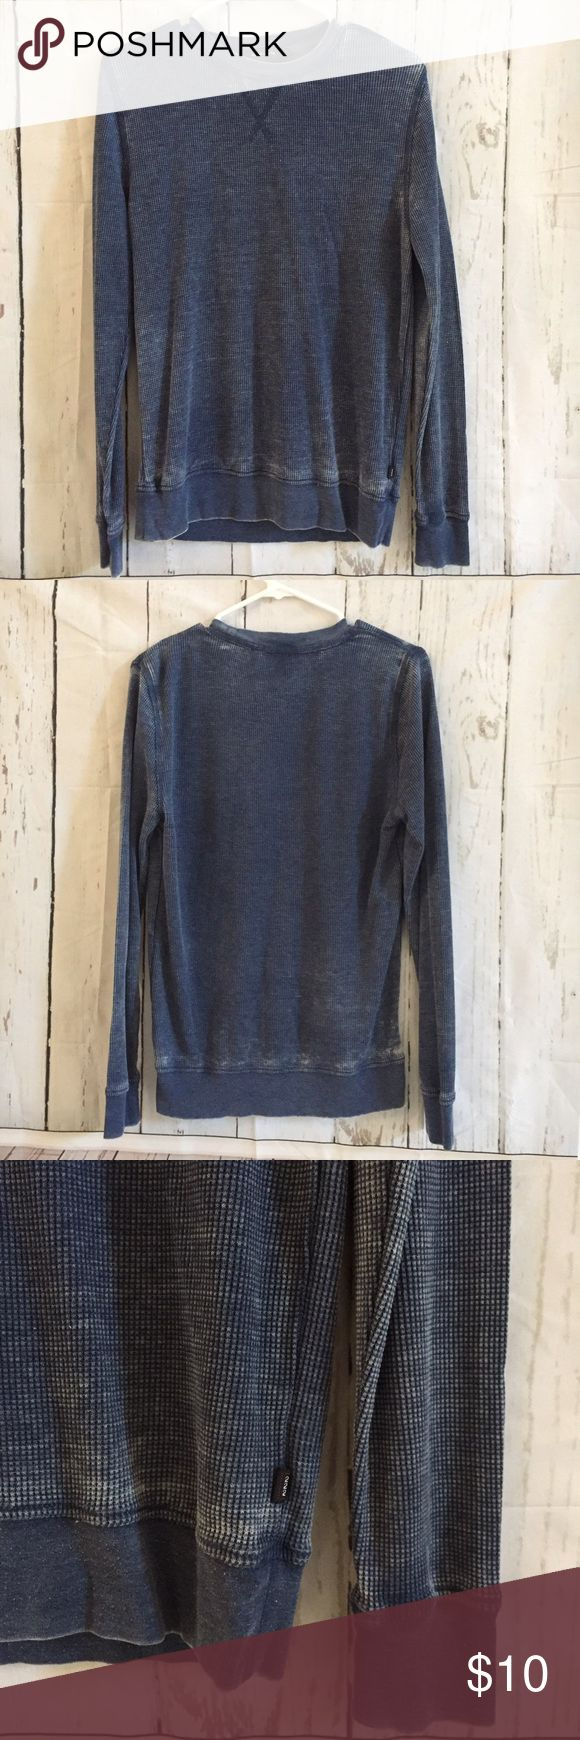 Adam Levine Thin Wash Thermal Adam Levine Thin Wash Thermal. Longsleeve. Lightweight and not heavy material. Cotton polyester blend. Used a handful of times. Slight polling on bottom band. Slim fit small. Color is a slightly lighter blue than shown in pic. Adam Levine Shirts Tees - Long Sleeve